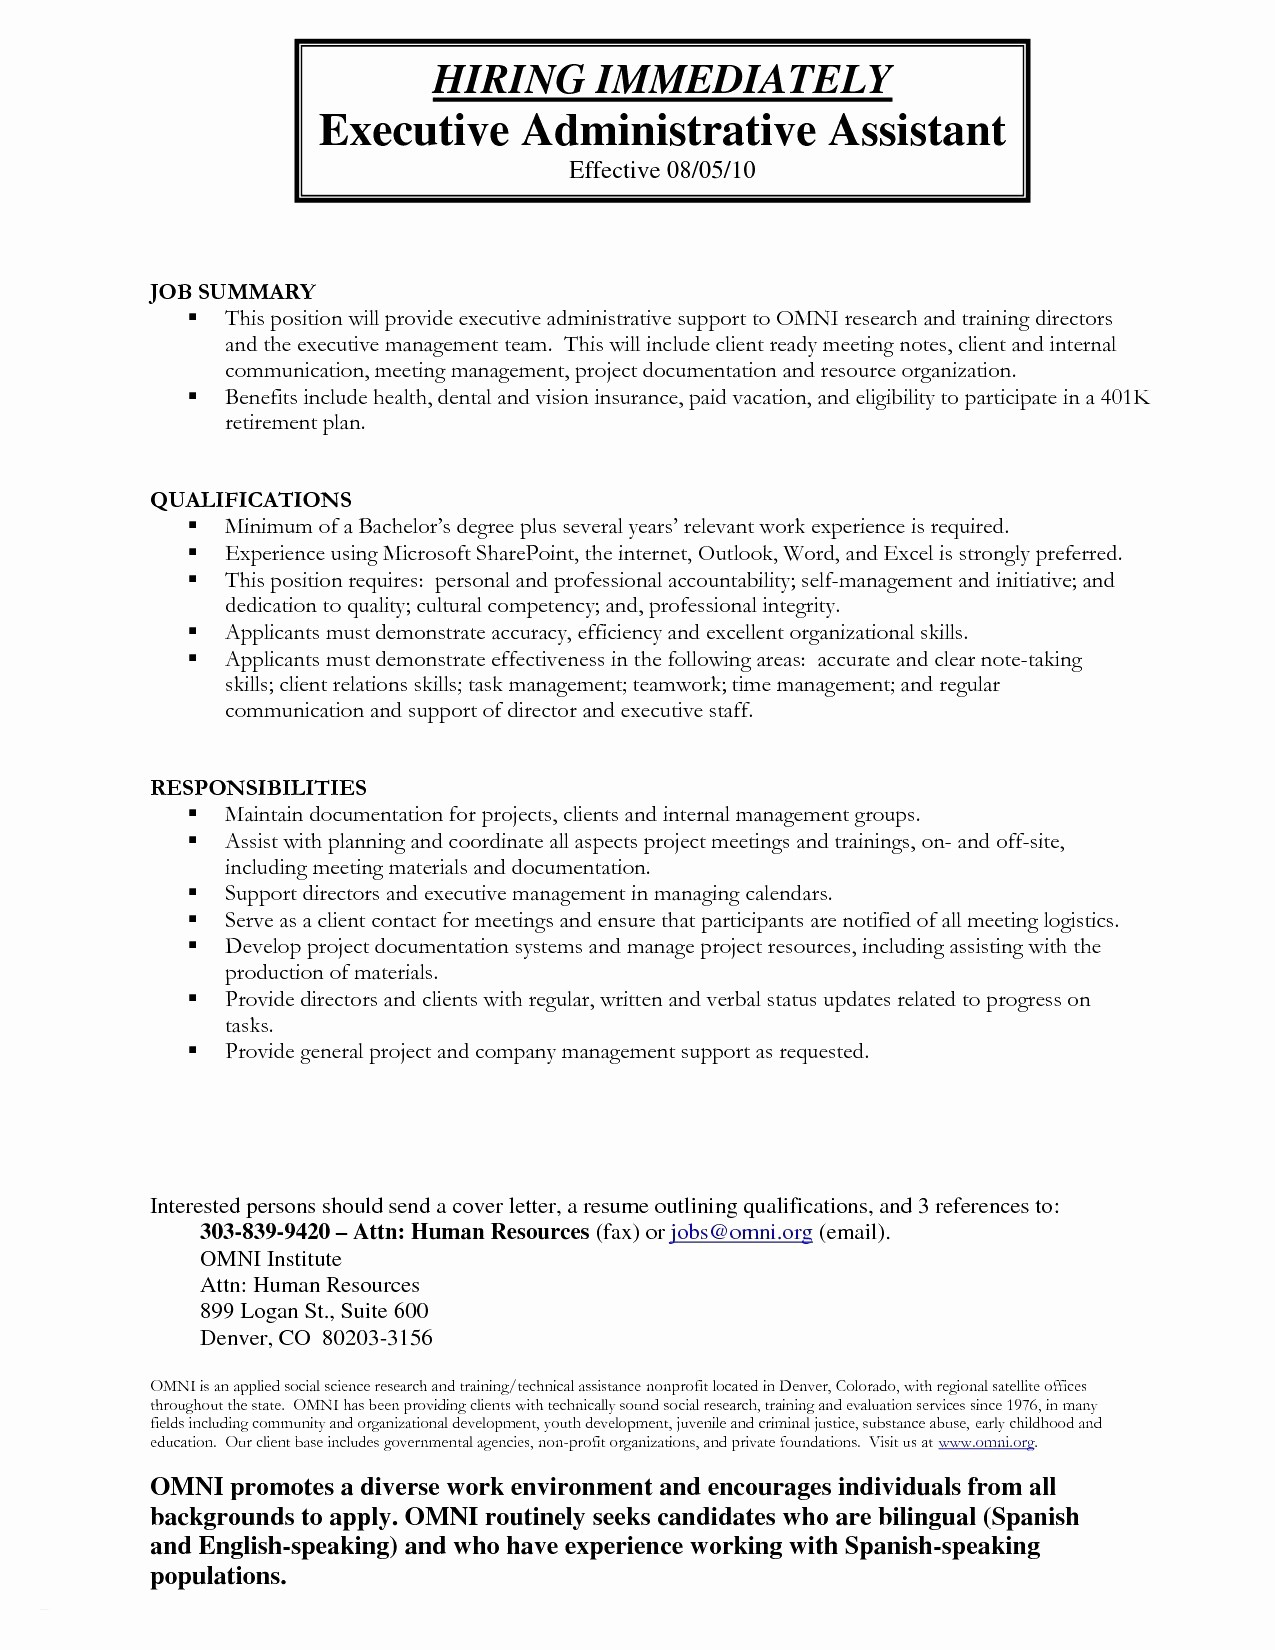 Dhs Personal assistant Job Description - Personal assistant Job Description Resume